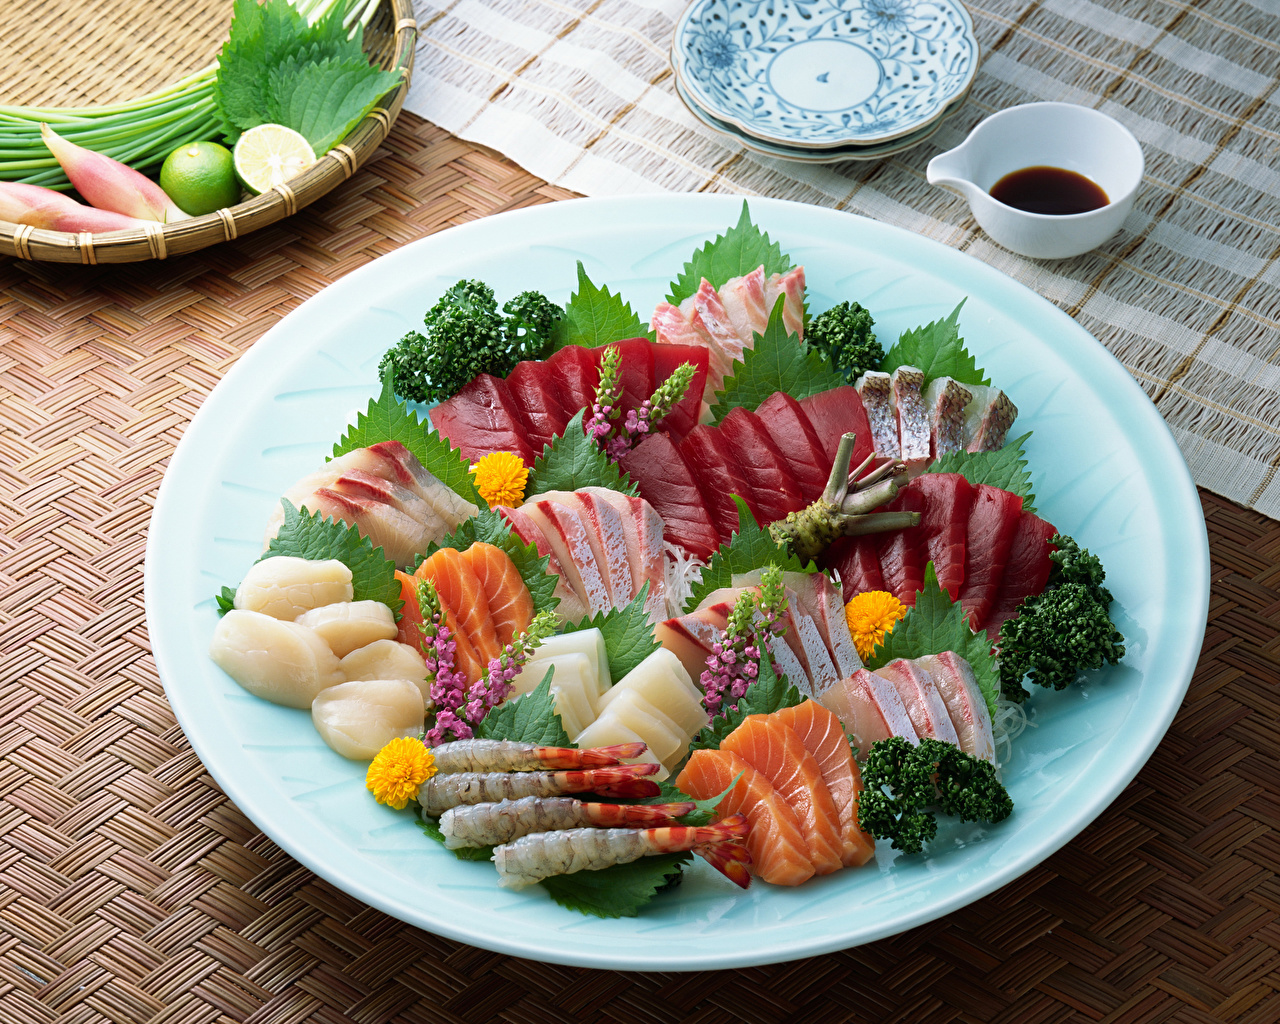 Picture Fish - Food Food Plate Vegetables Seafoods